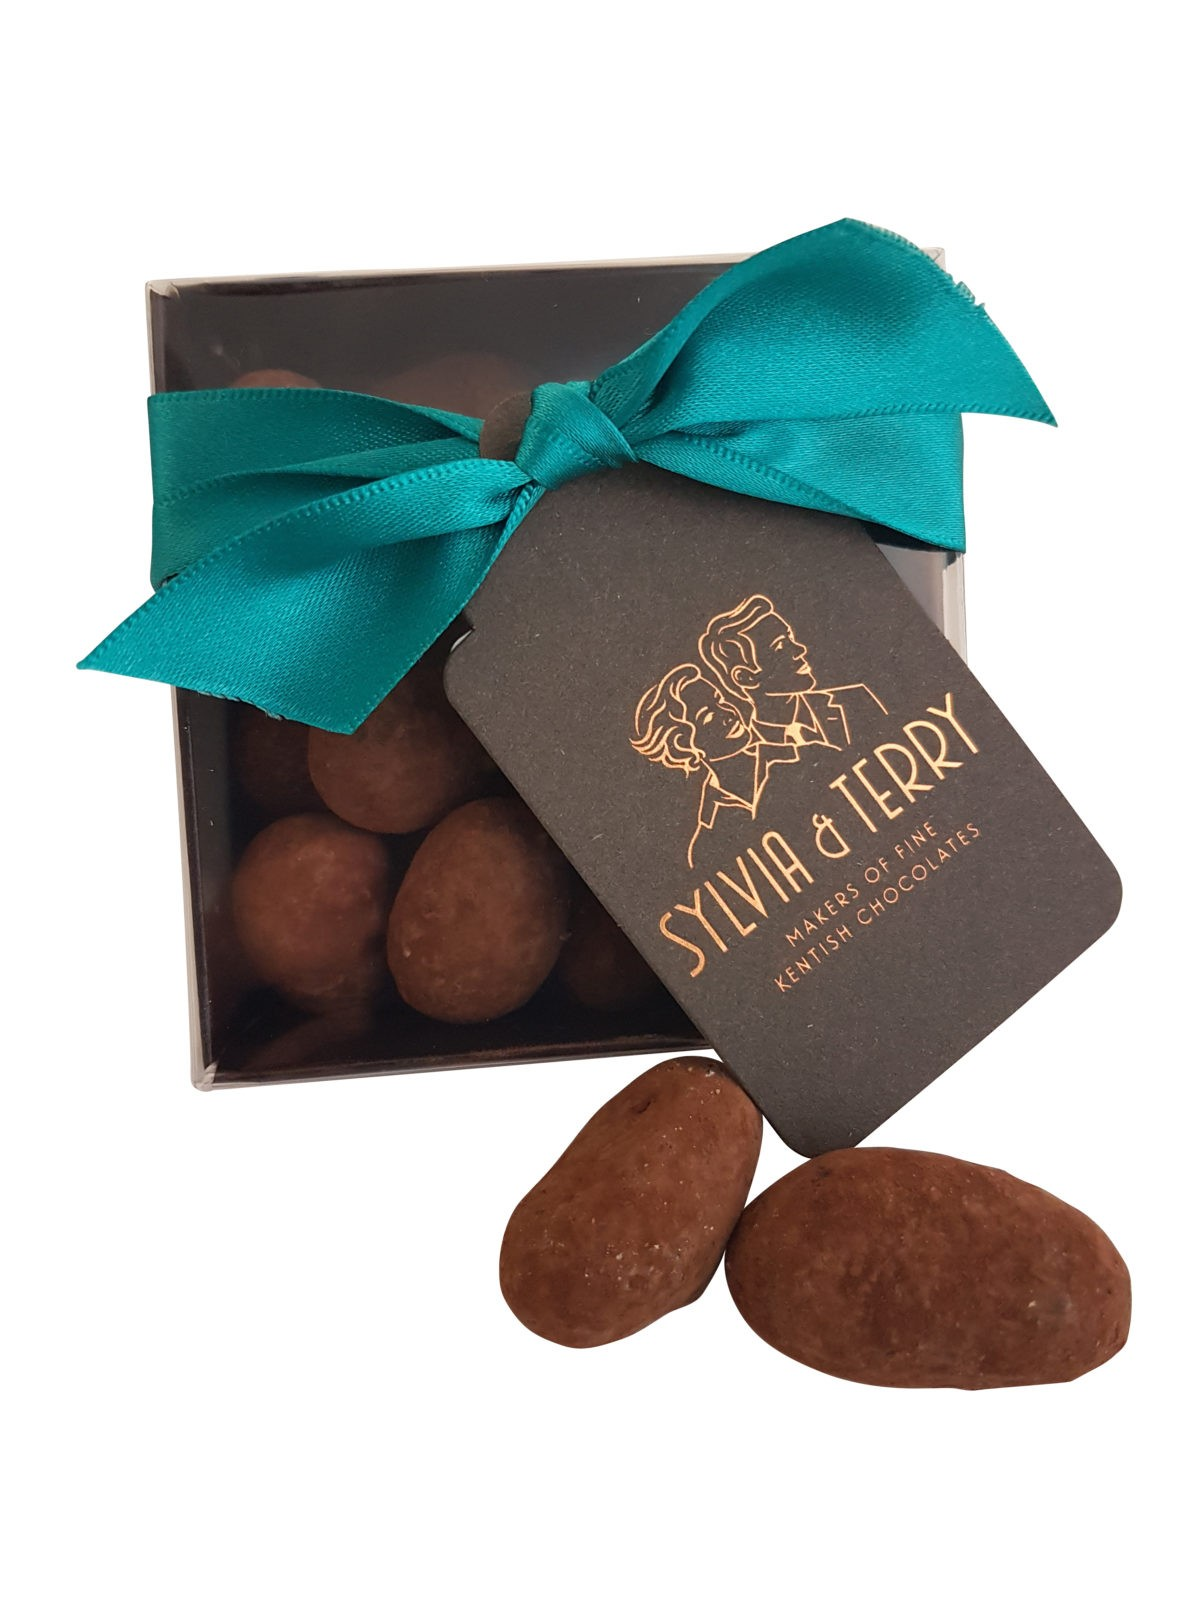 Brazil nuts giftbox